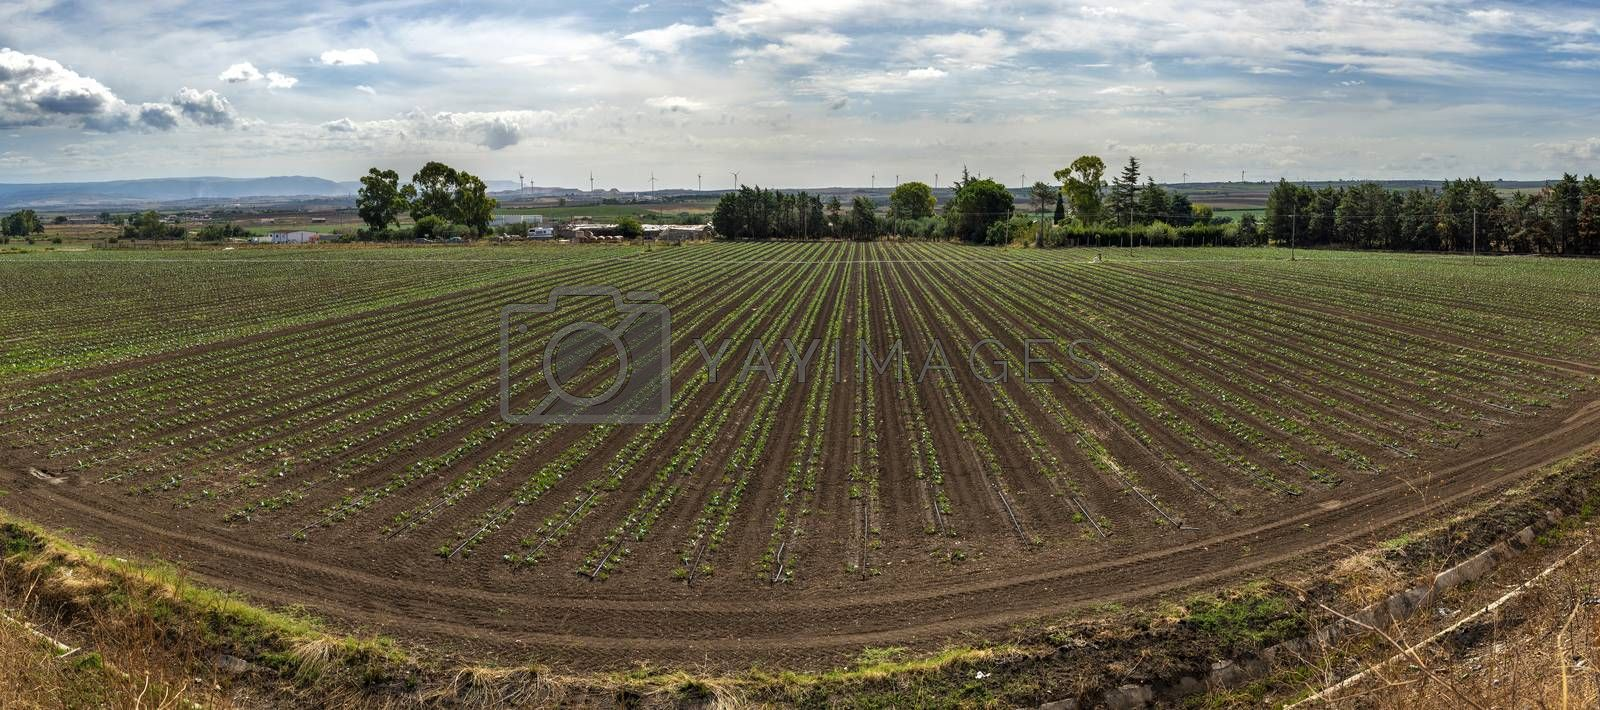 Newly planted broccoli plantation. Seedlings in rows. High view. Big industrial farm with vegetables.